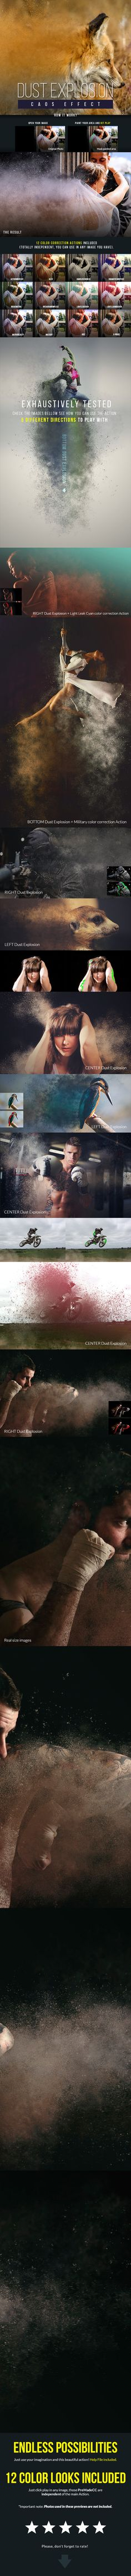 Dust Explosion Caos Effect - Photo Effects Actions